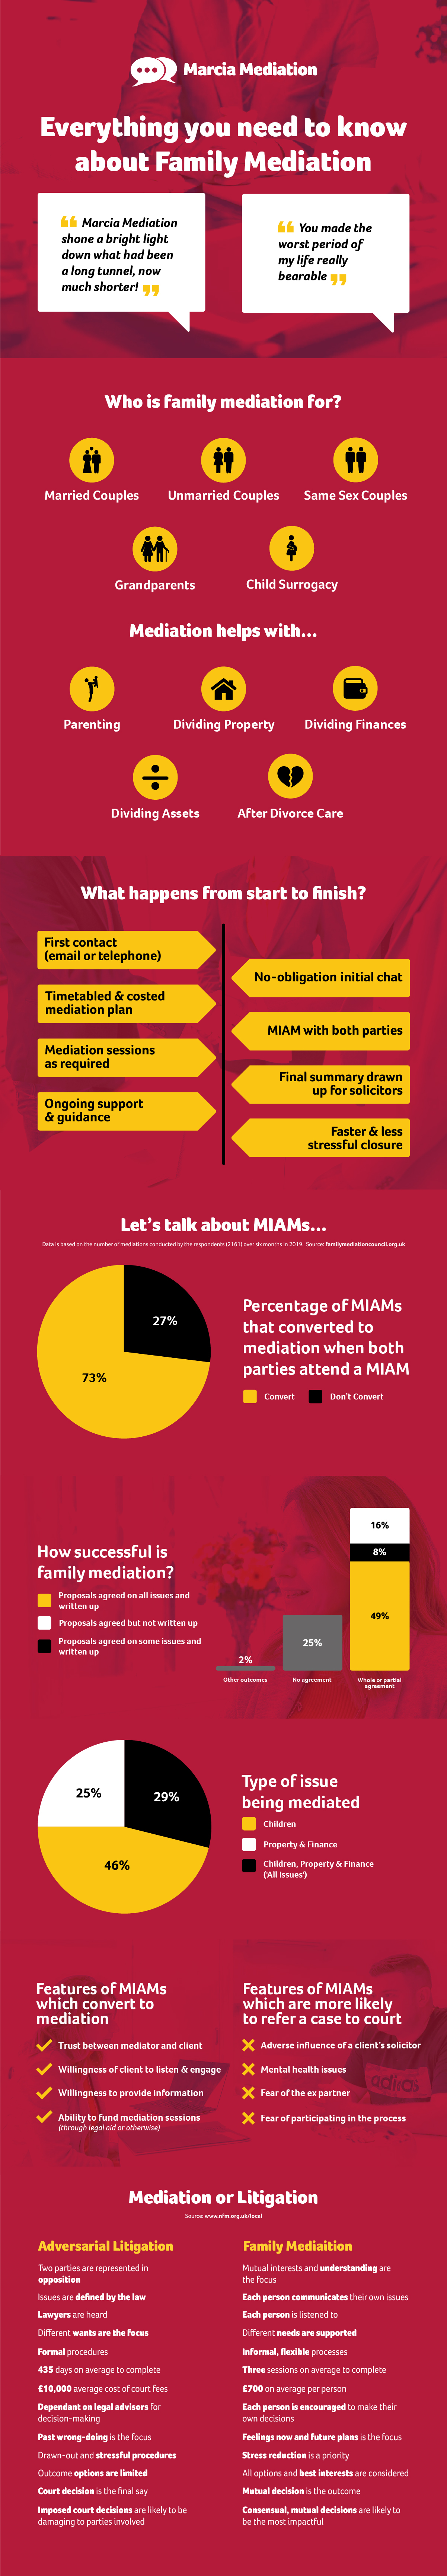 Family Mediation Infographic